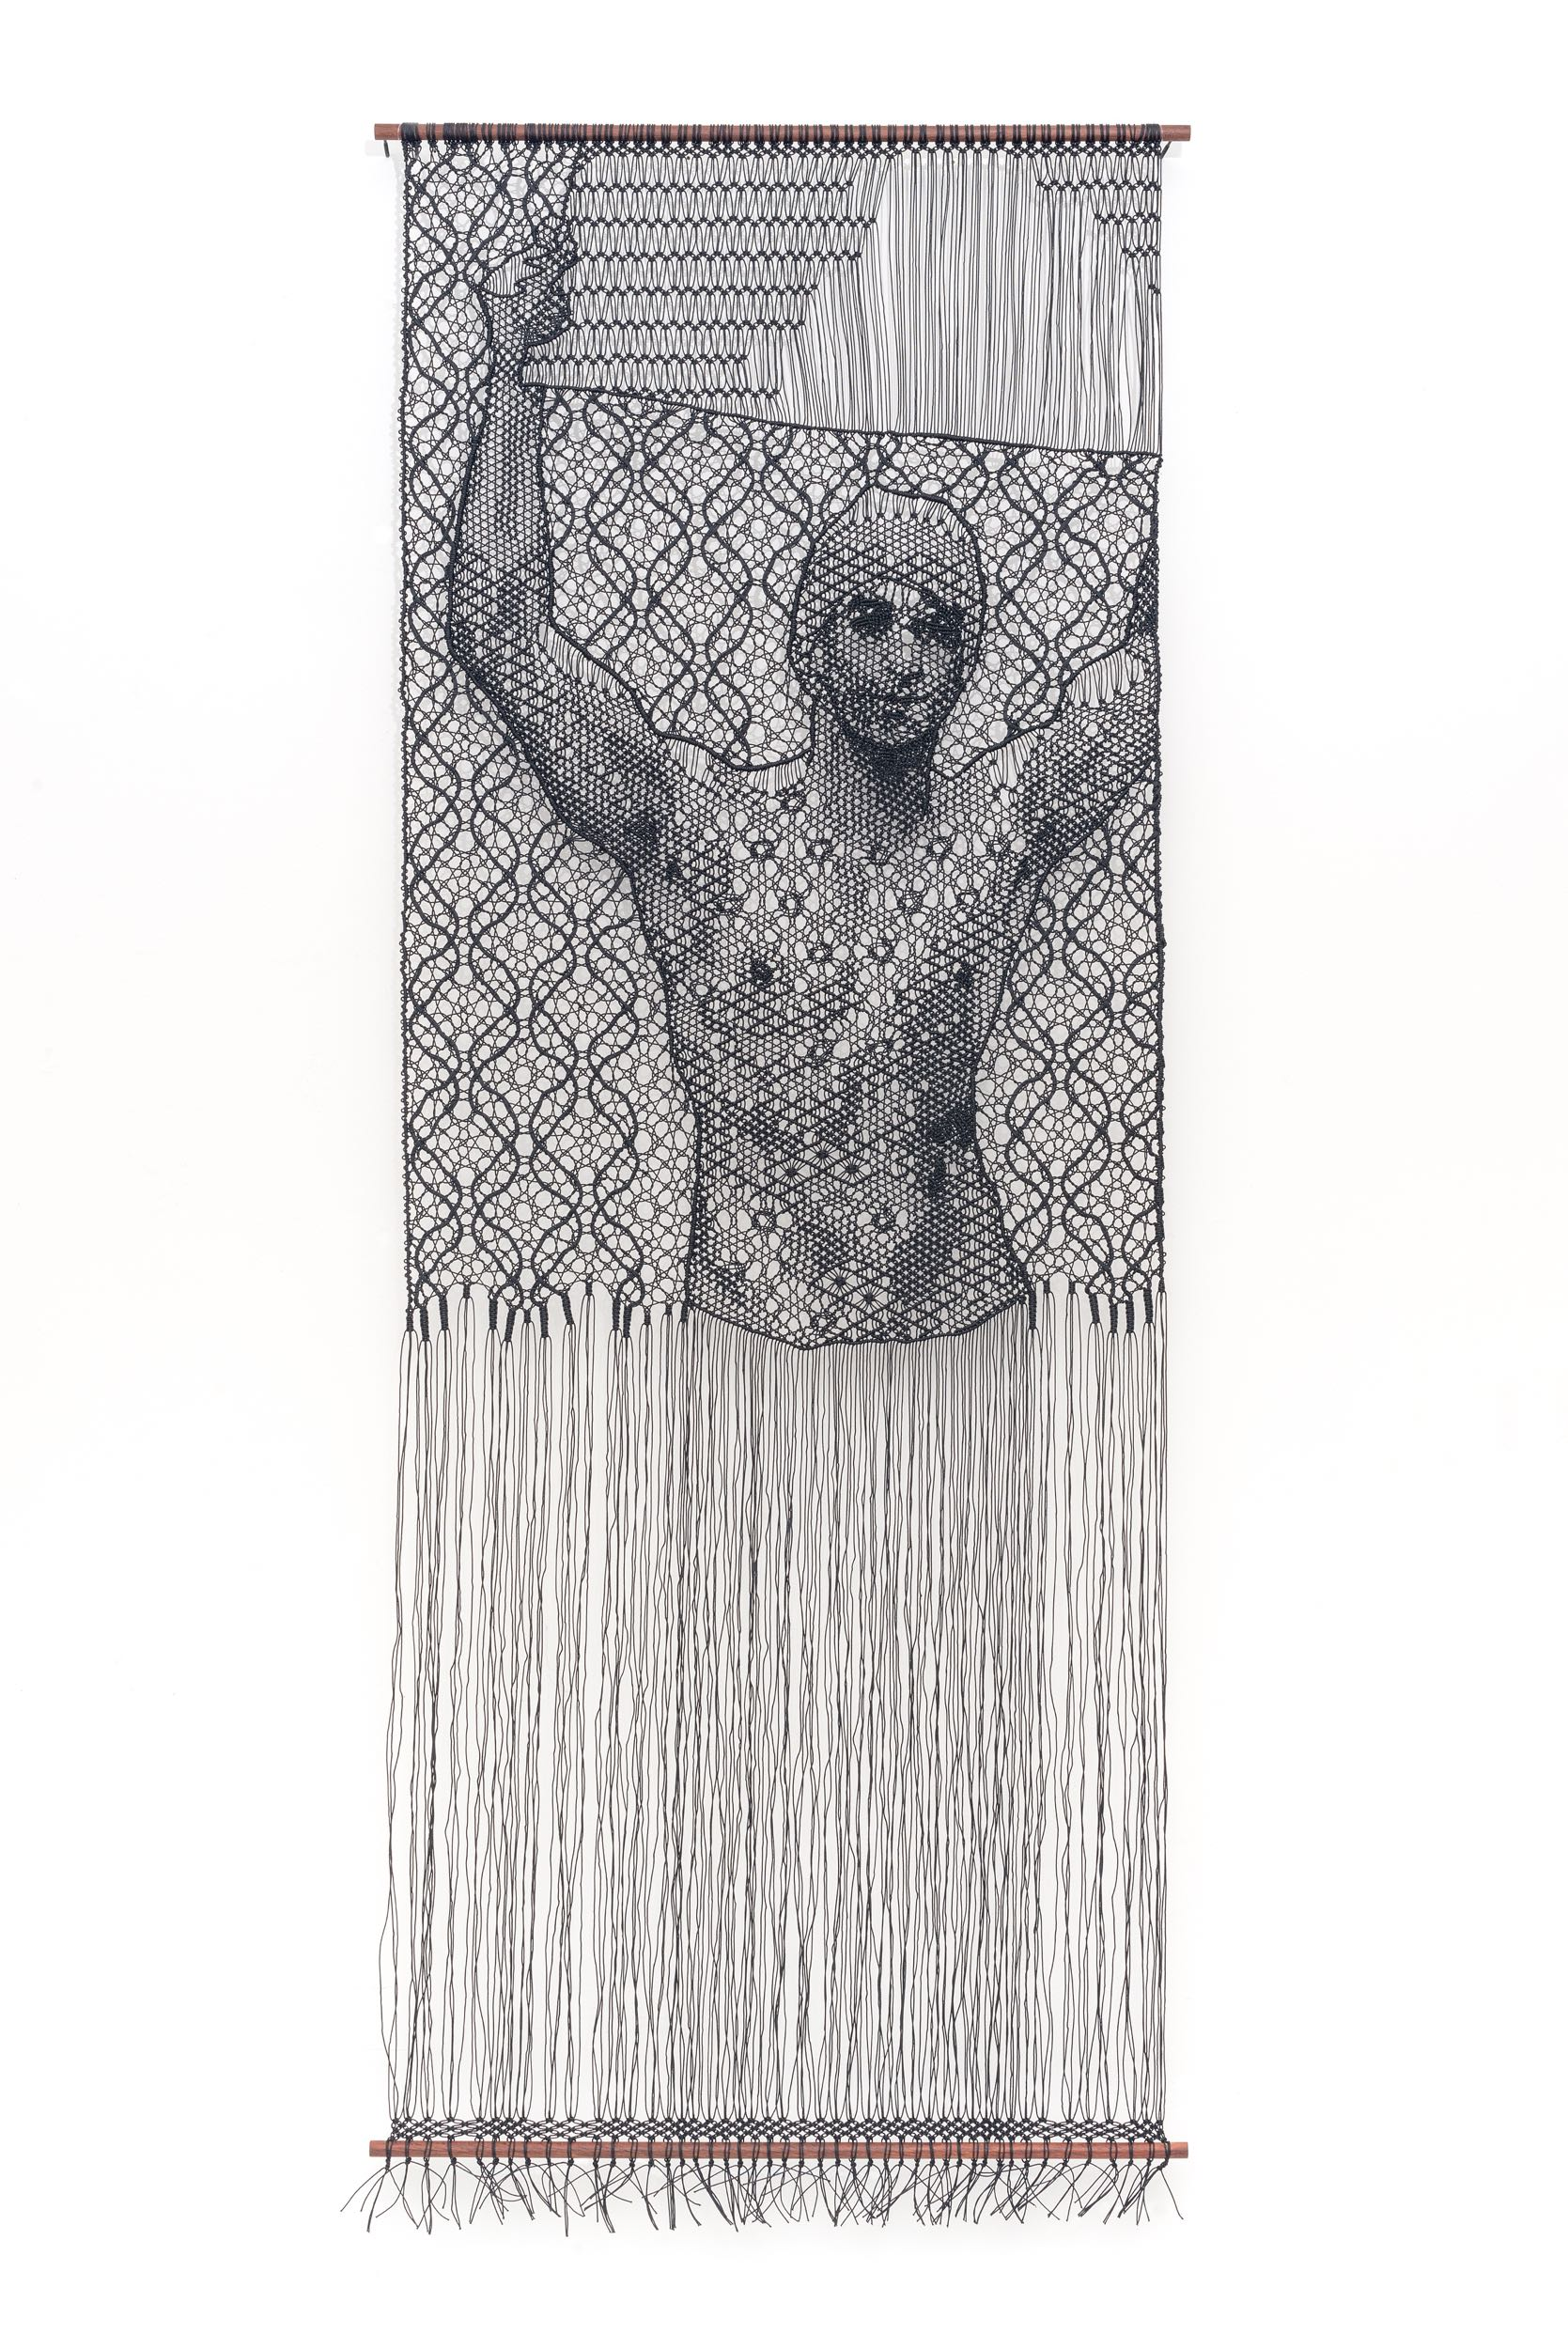 Pierre Fouché. The Judgment of Paris (after Wtewael) III. 2018. Bobbin lace and macramé in polyester braid, wood. 208 x 80cm. Private collection.